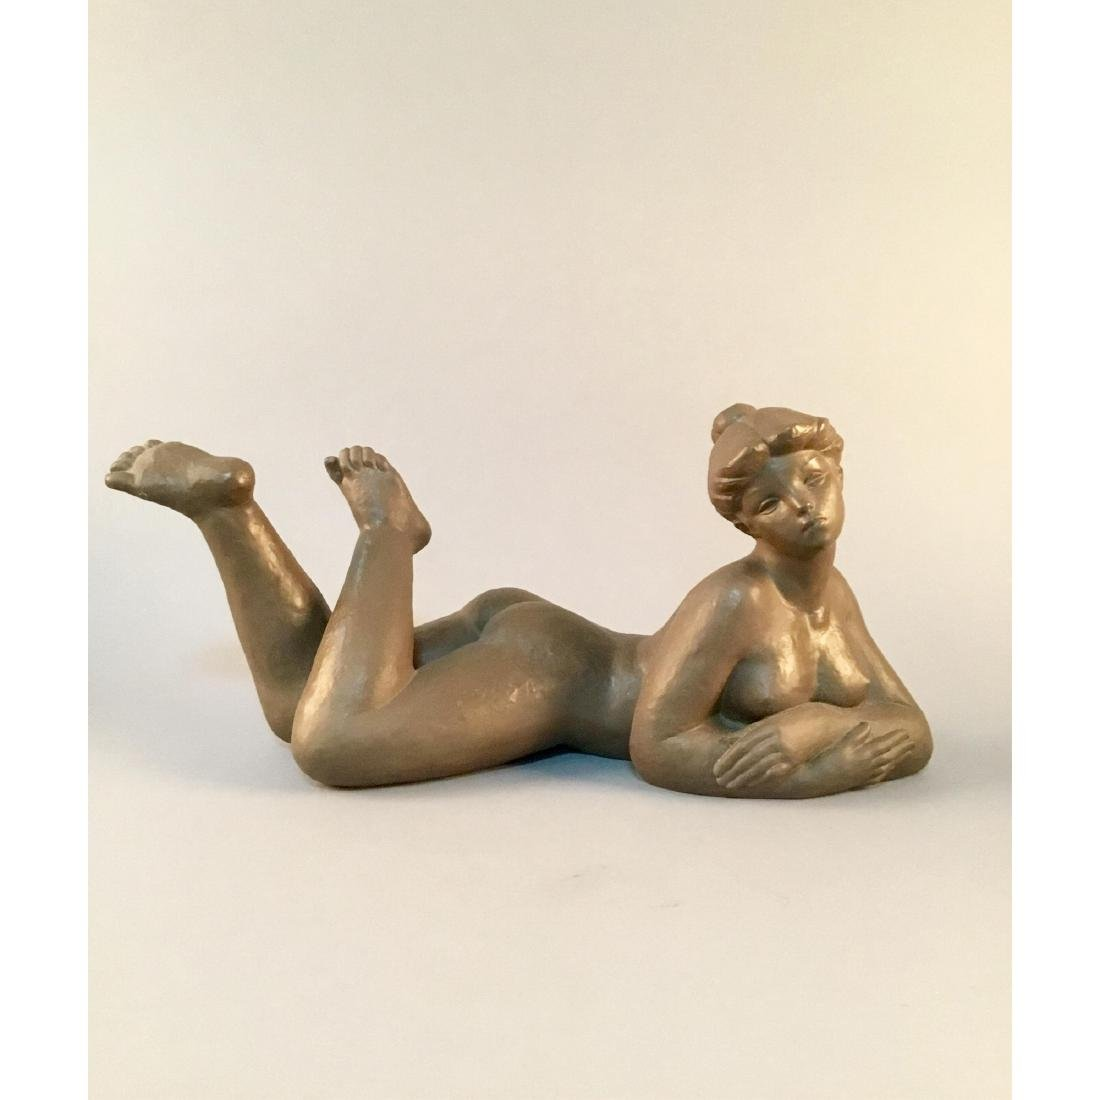 NAO BY LLADRO LARGE NUDE SCULPTURE